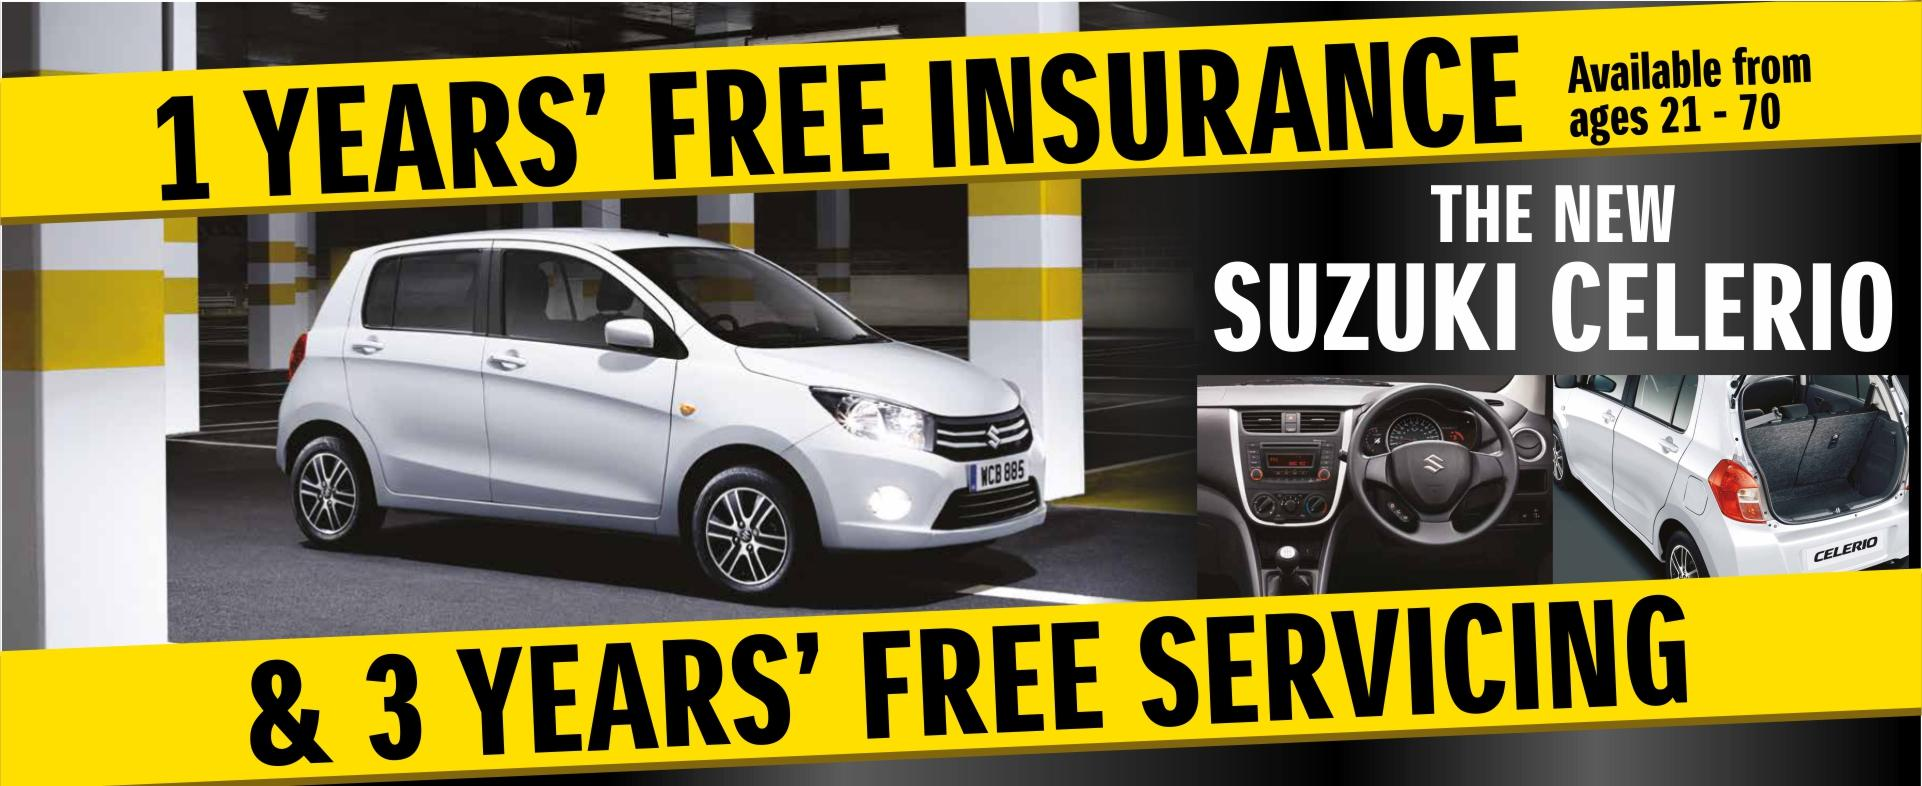 Celerio Free Insurance & 3 Years Free Servicing